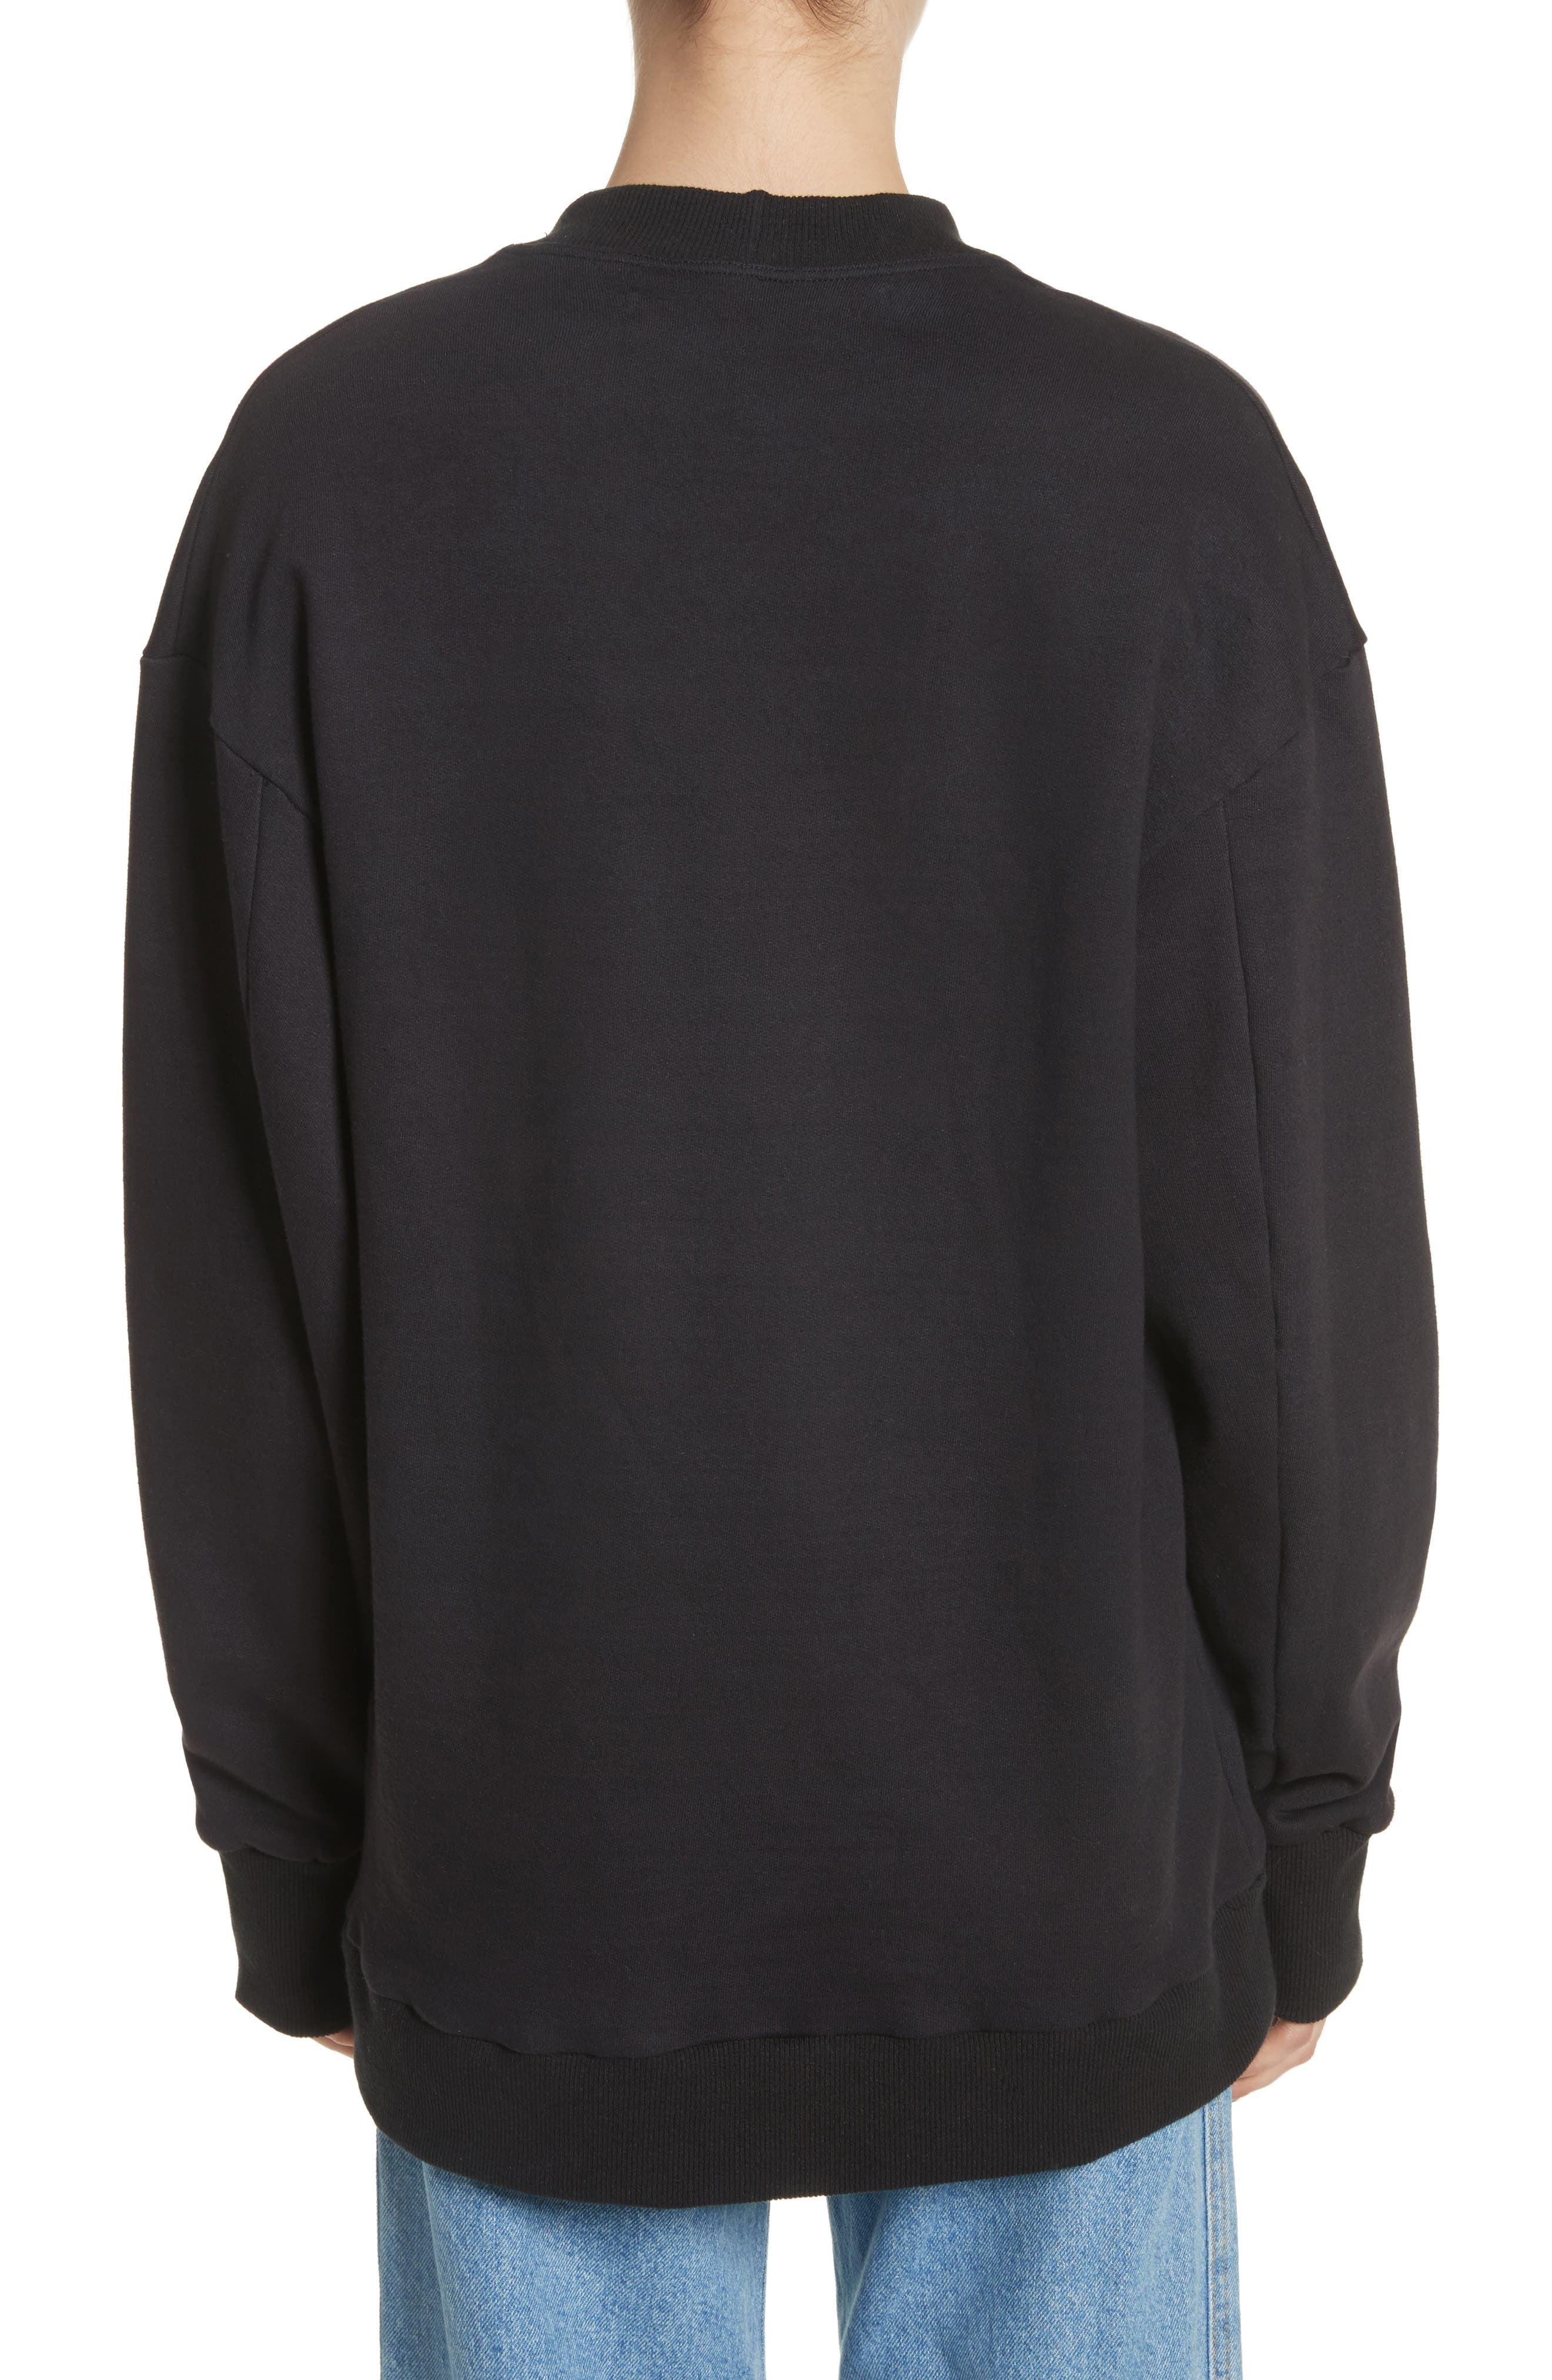 Relaxed Fit Sweatshirt,                             Alternate thumbnail 2, color,                             Black